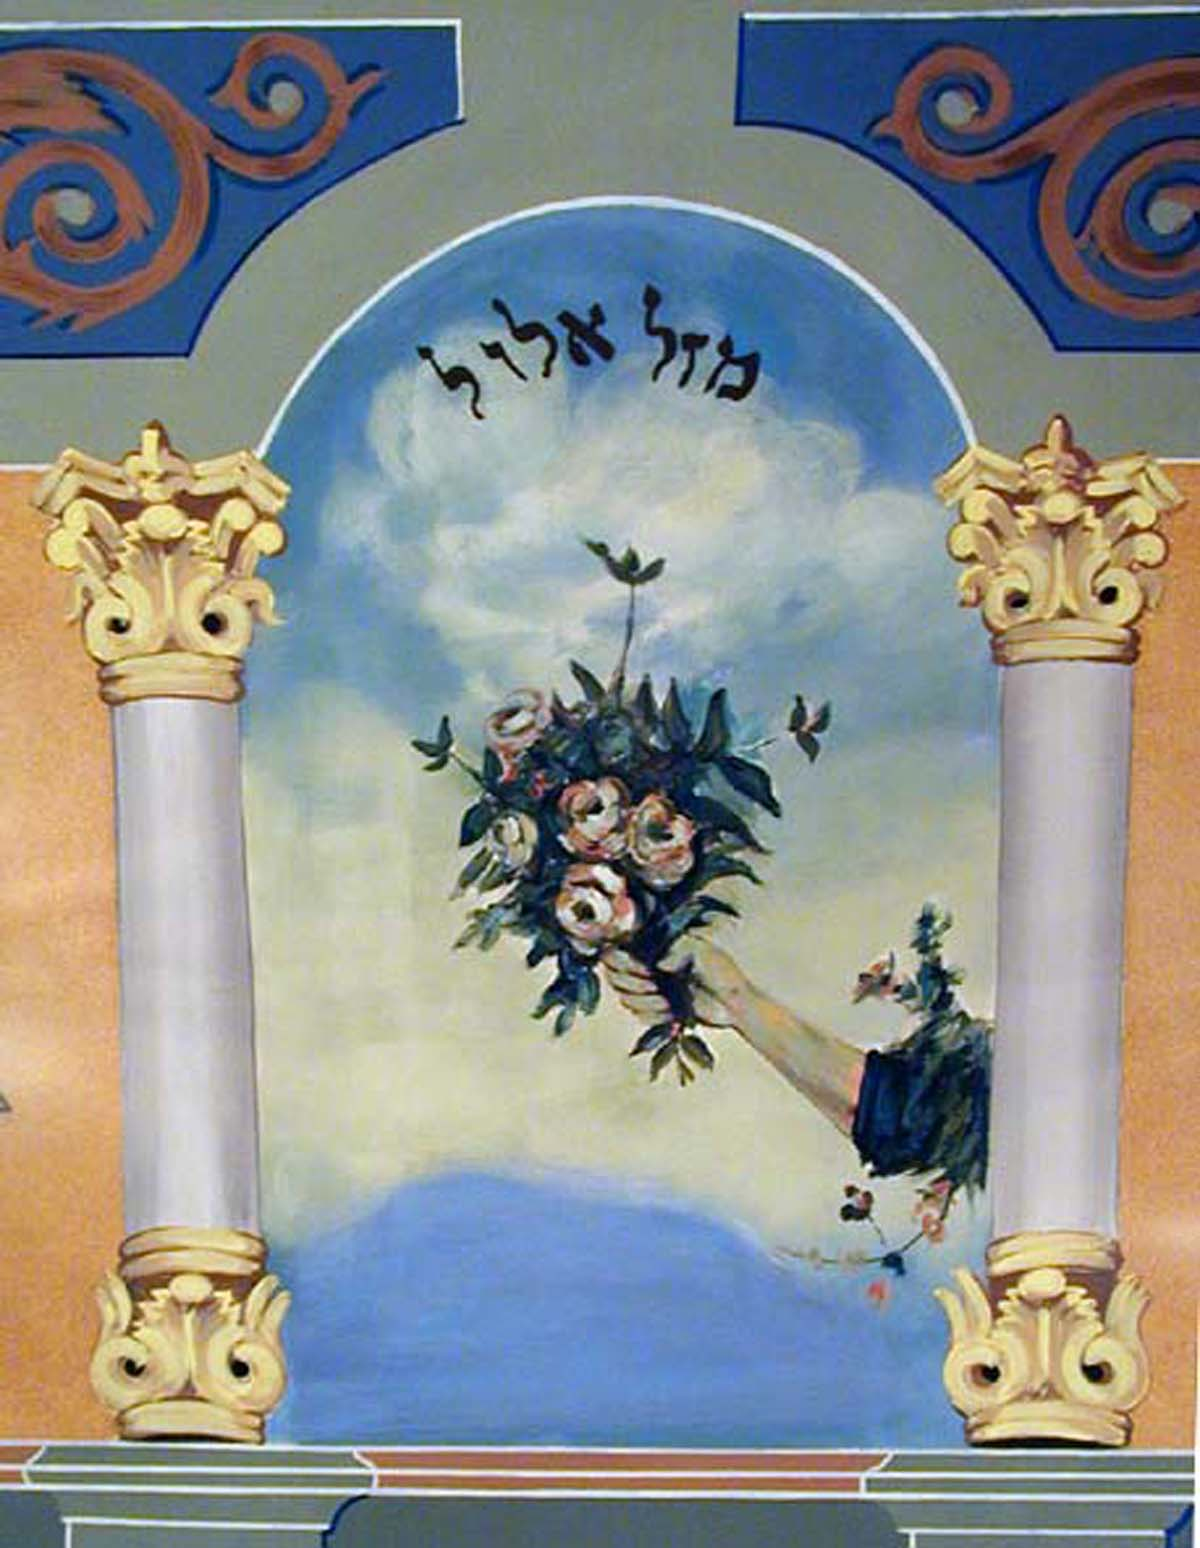 Mazel Elul - Virgo the Virgin - The Bialystoker Synagogue